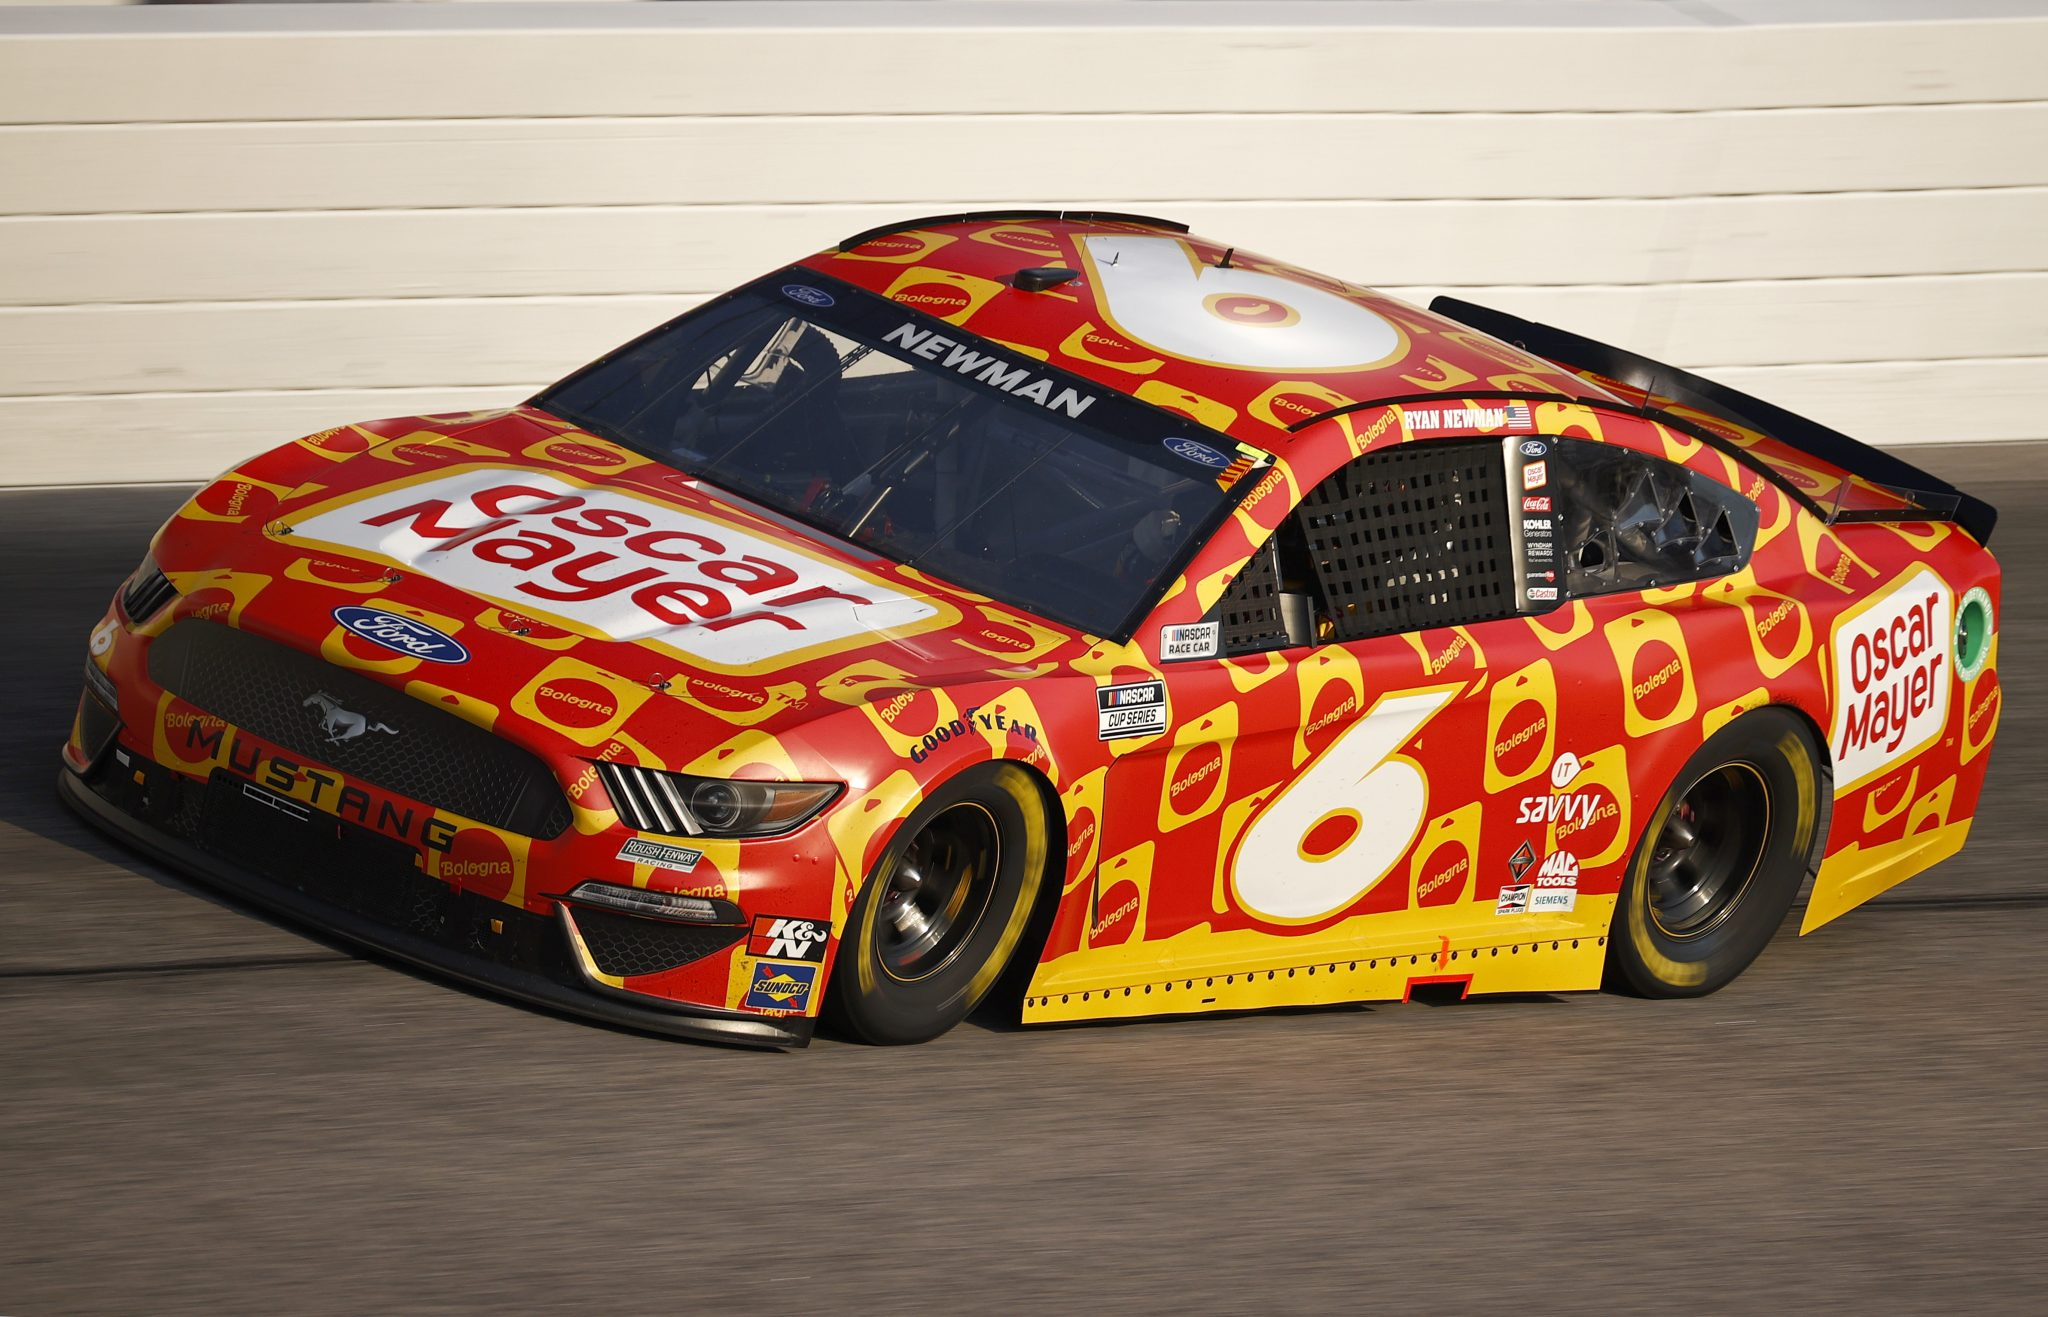 DARLINGTON, SOUTH CAROLINA - SEPTEMBER 05: Ryan Newman, driver of the #6 Oscar Mayer Bologna Ford, drives during the NASCAR Cup Series Cook Out Southern 500 at Darlington Raceway on September 05, 2021 in Darlington, South Carolina. (Photo by Jared C. Tilton/Getty Images) | Getty Images